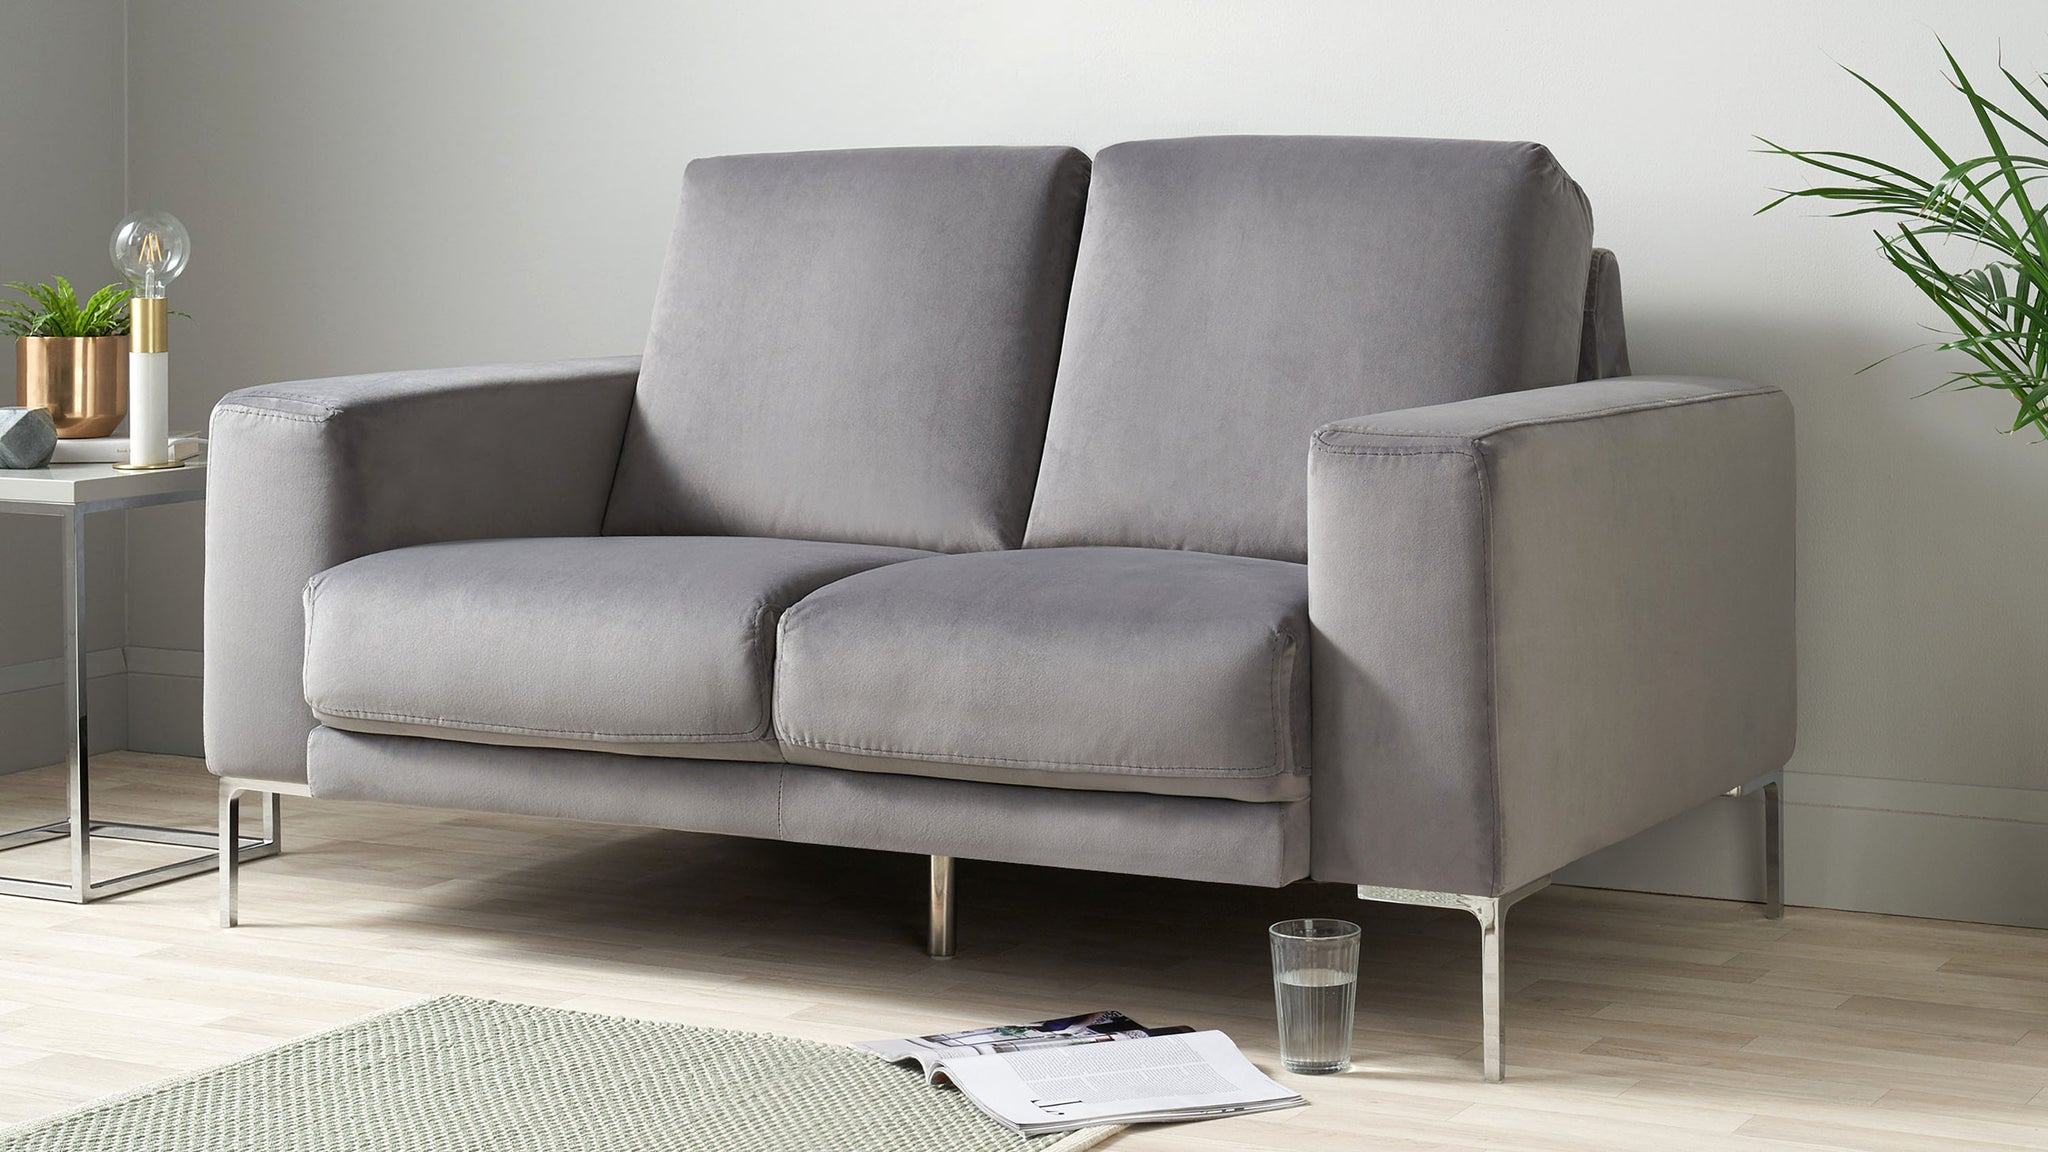 Studio Dark Grey Velvet With Chrome Leg 2 Seater Sofa